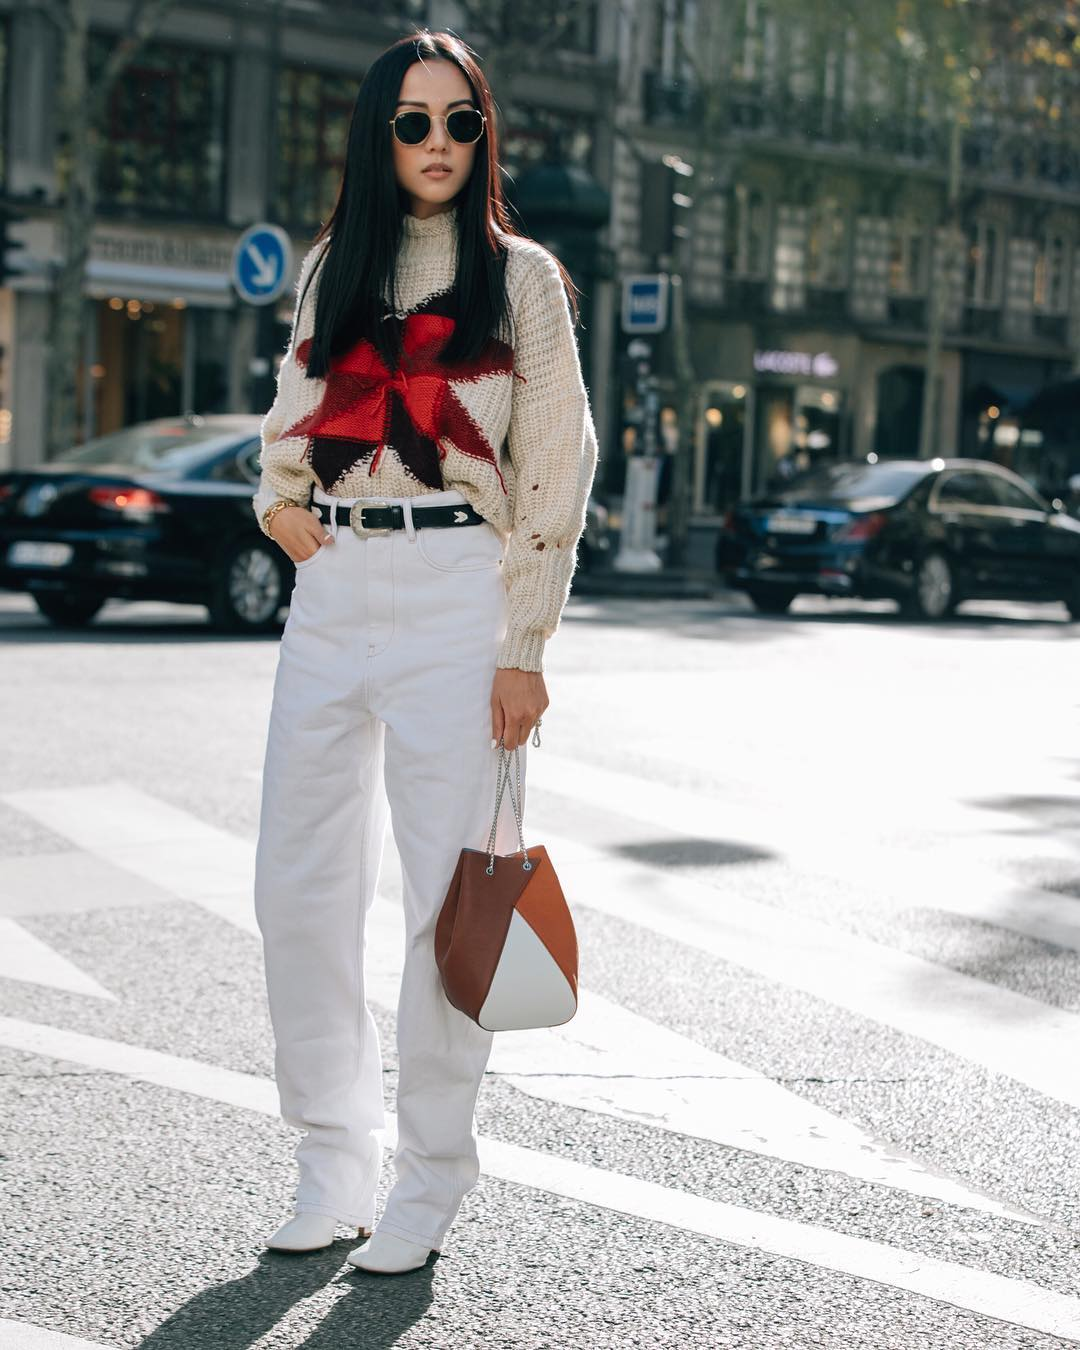 yoyo-cao-isabel-marant-hanoi-sweater-paris-fashion-week-street-style